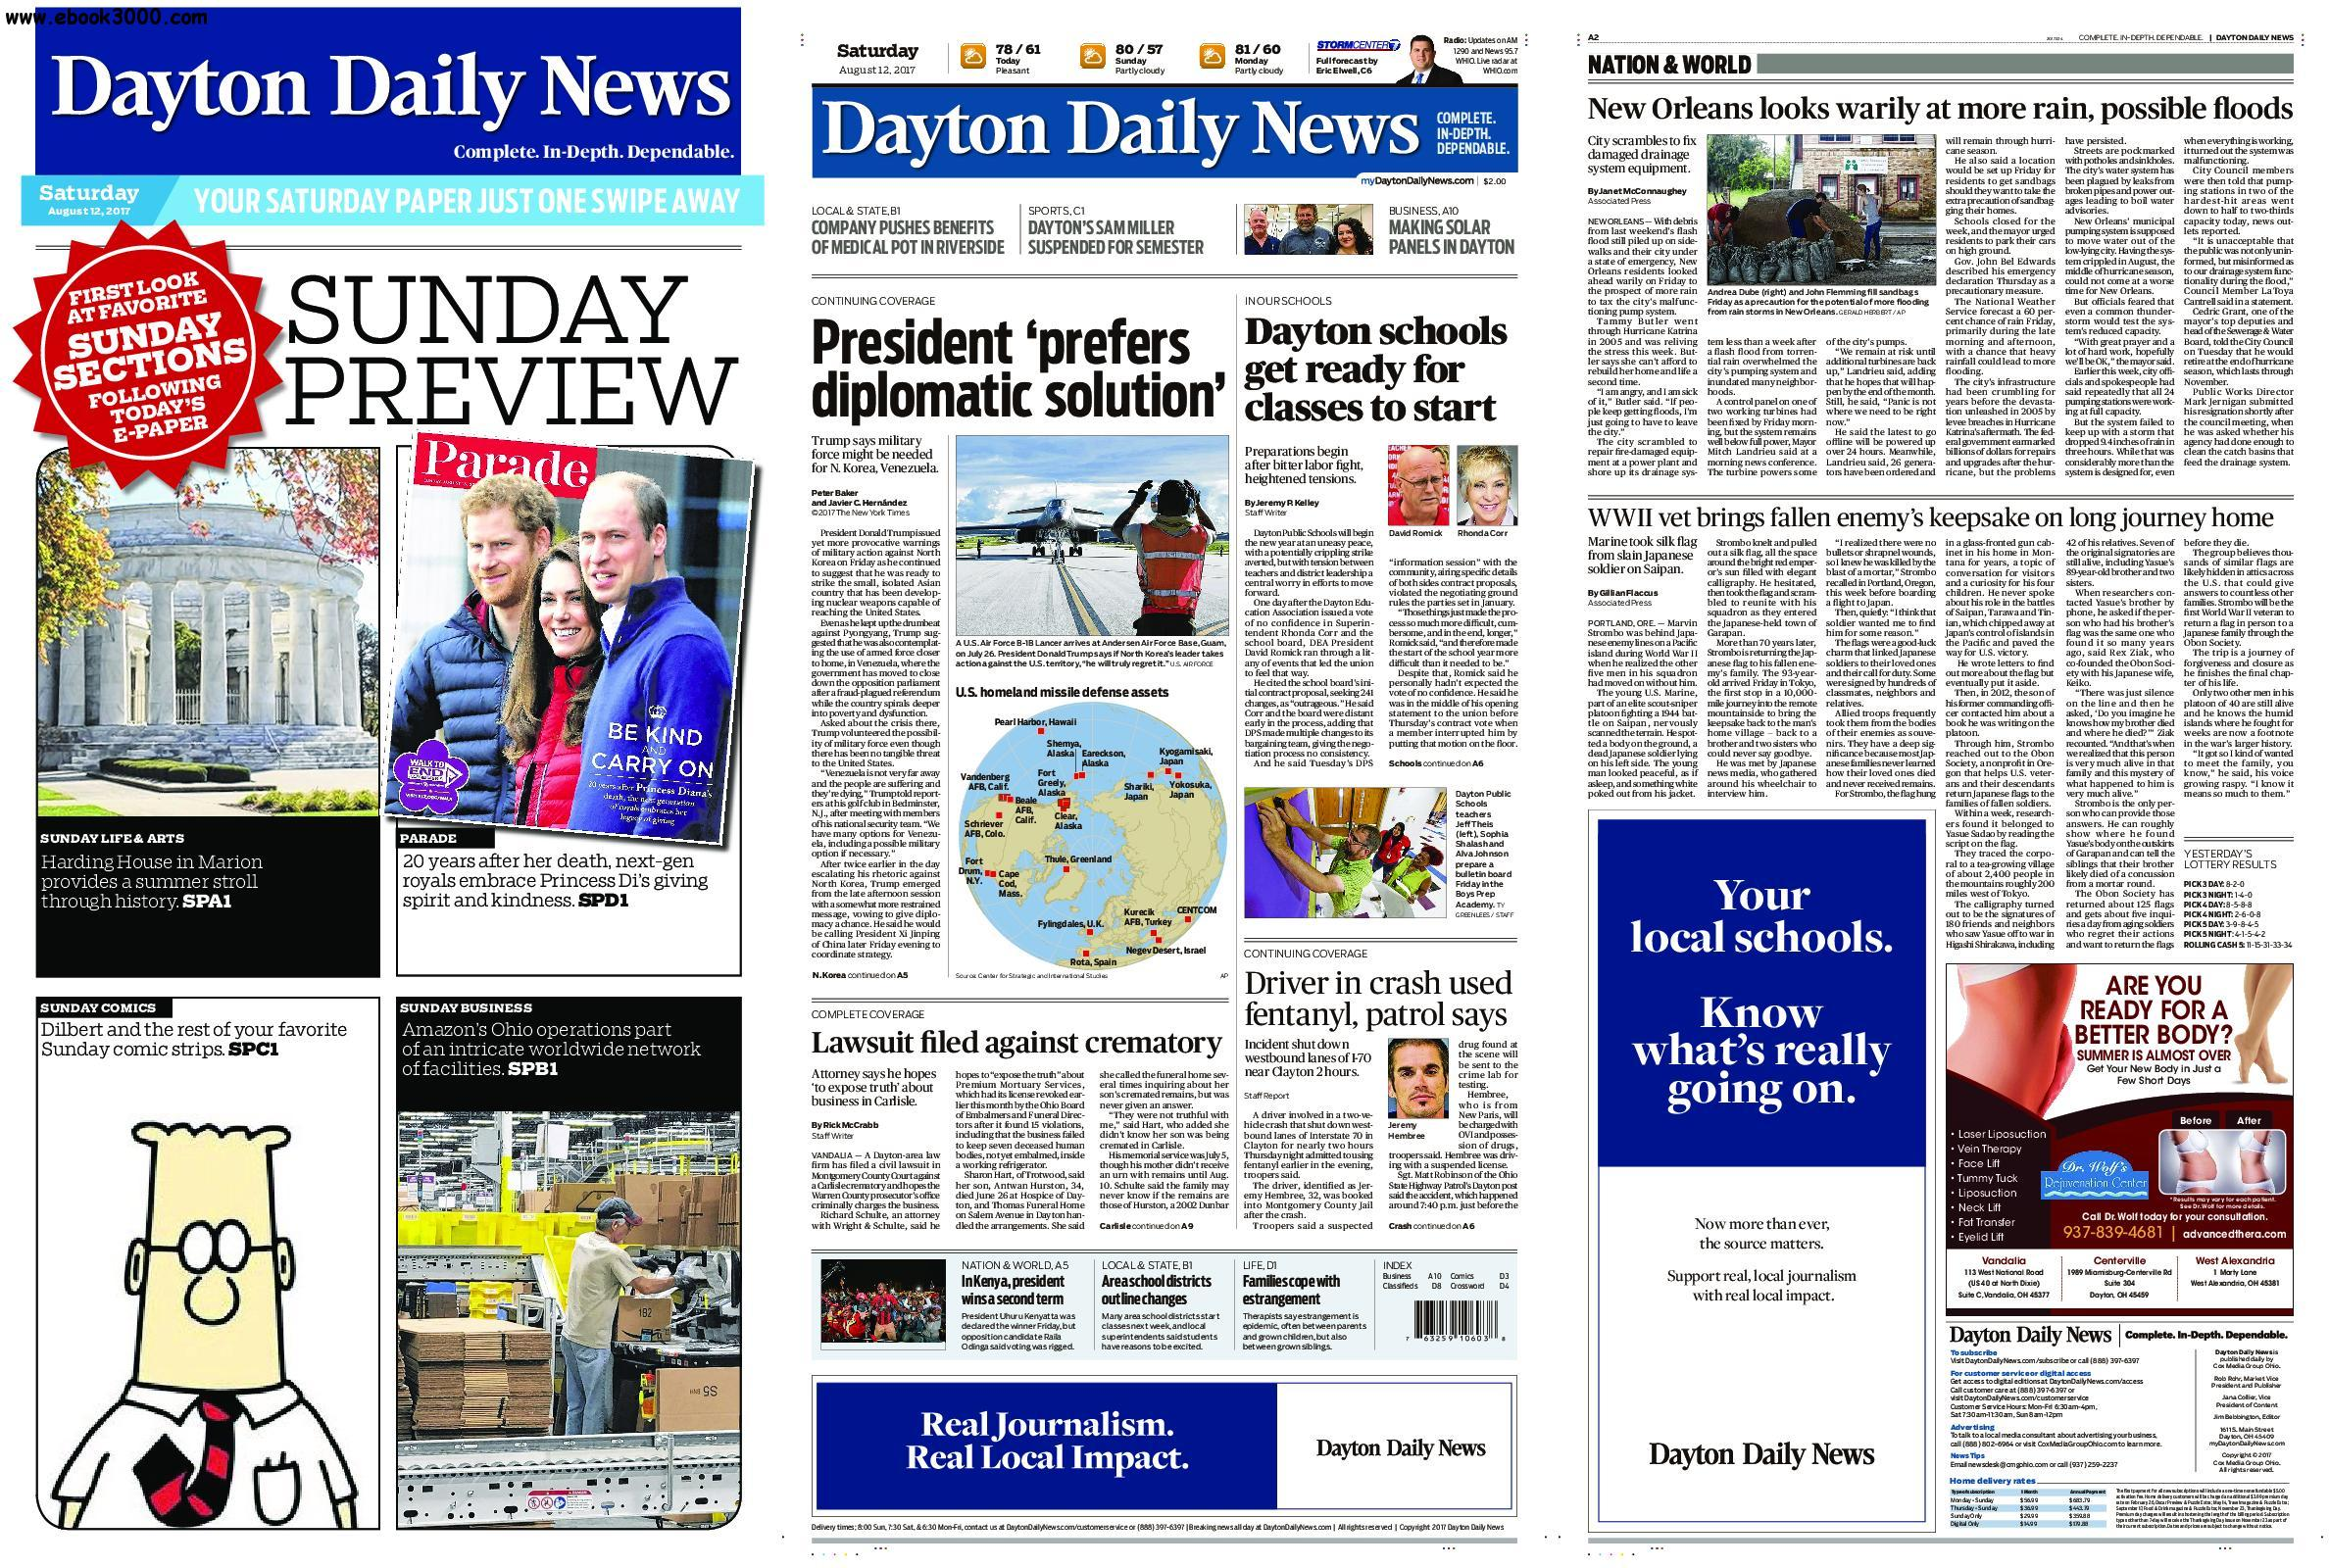 Dayton Daily News - August 12, 2017